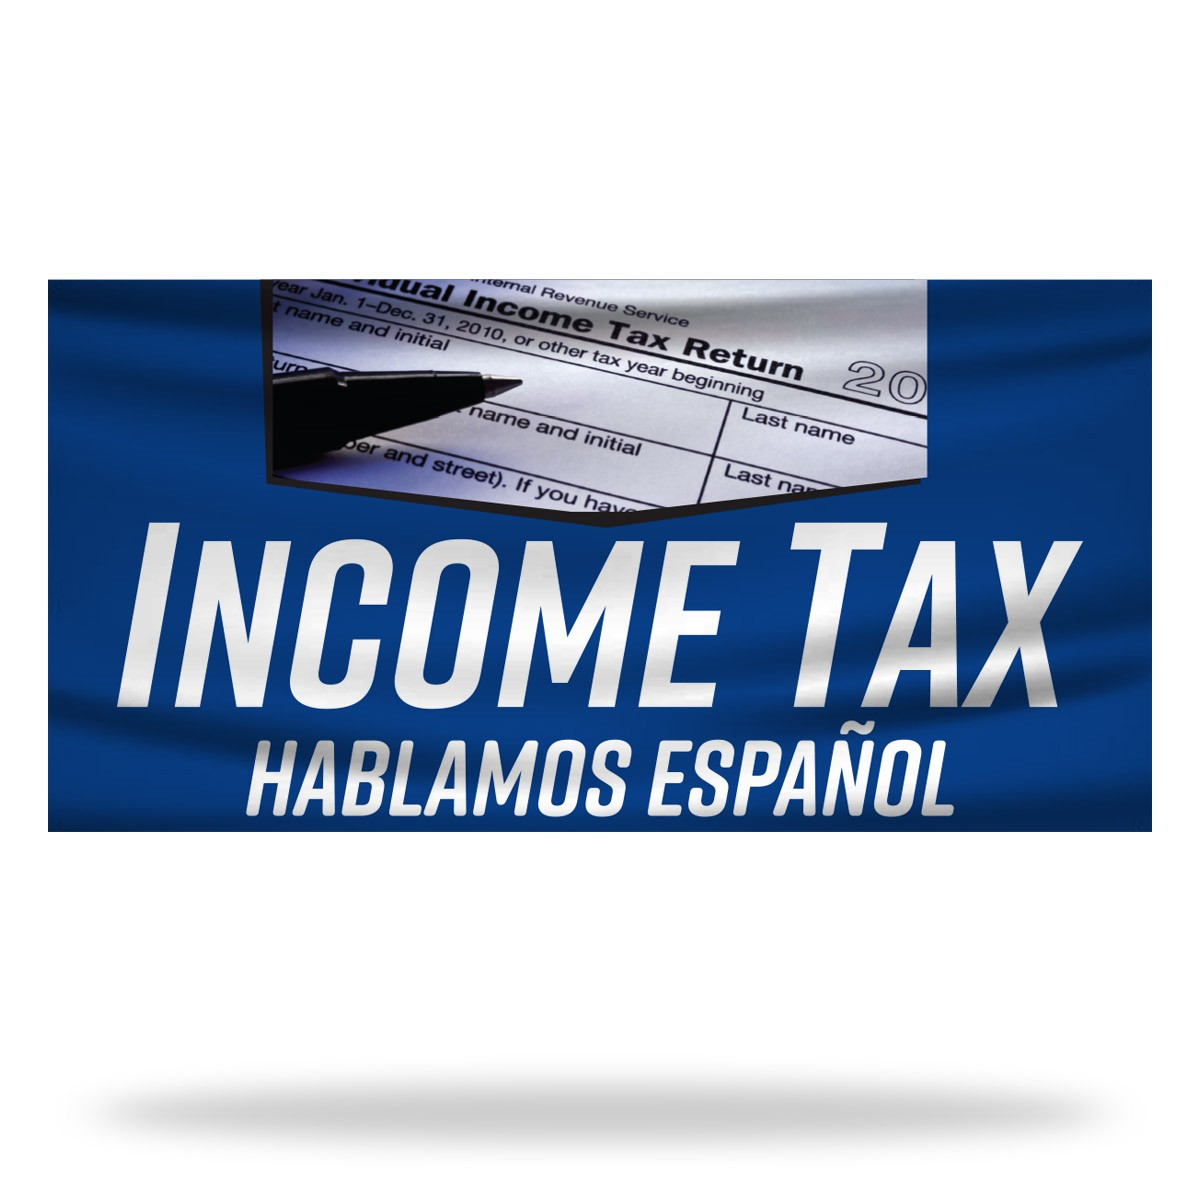 Income Tax Flags & Banners Design 06